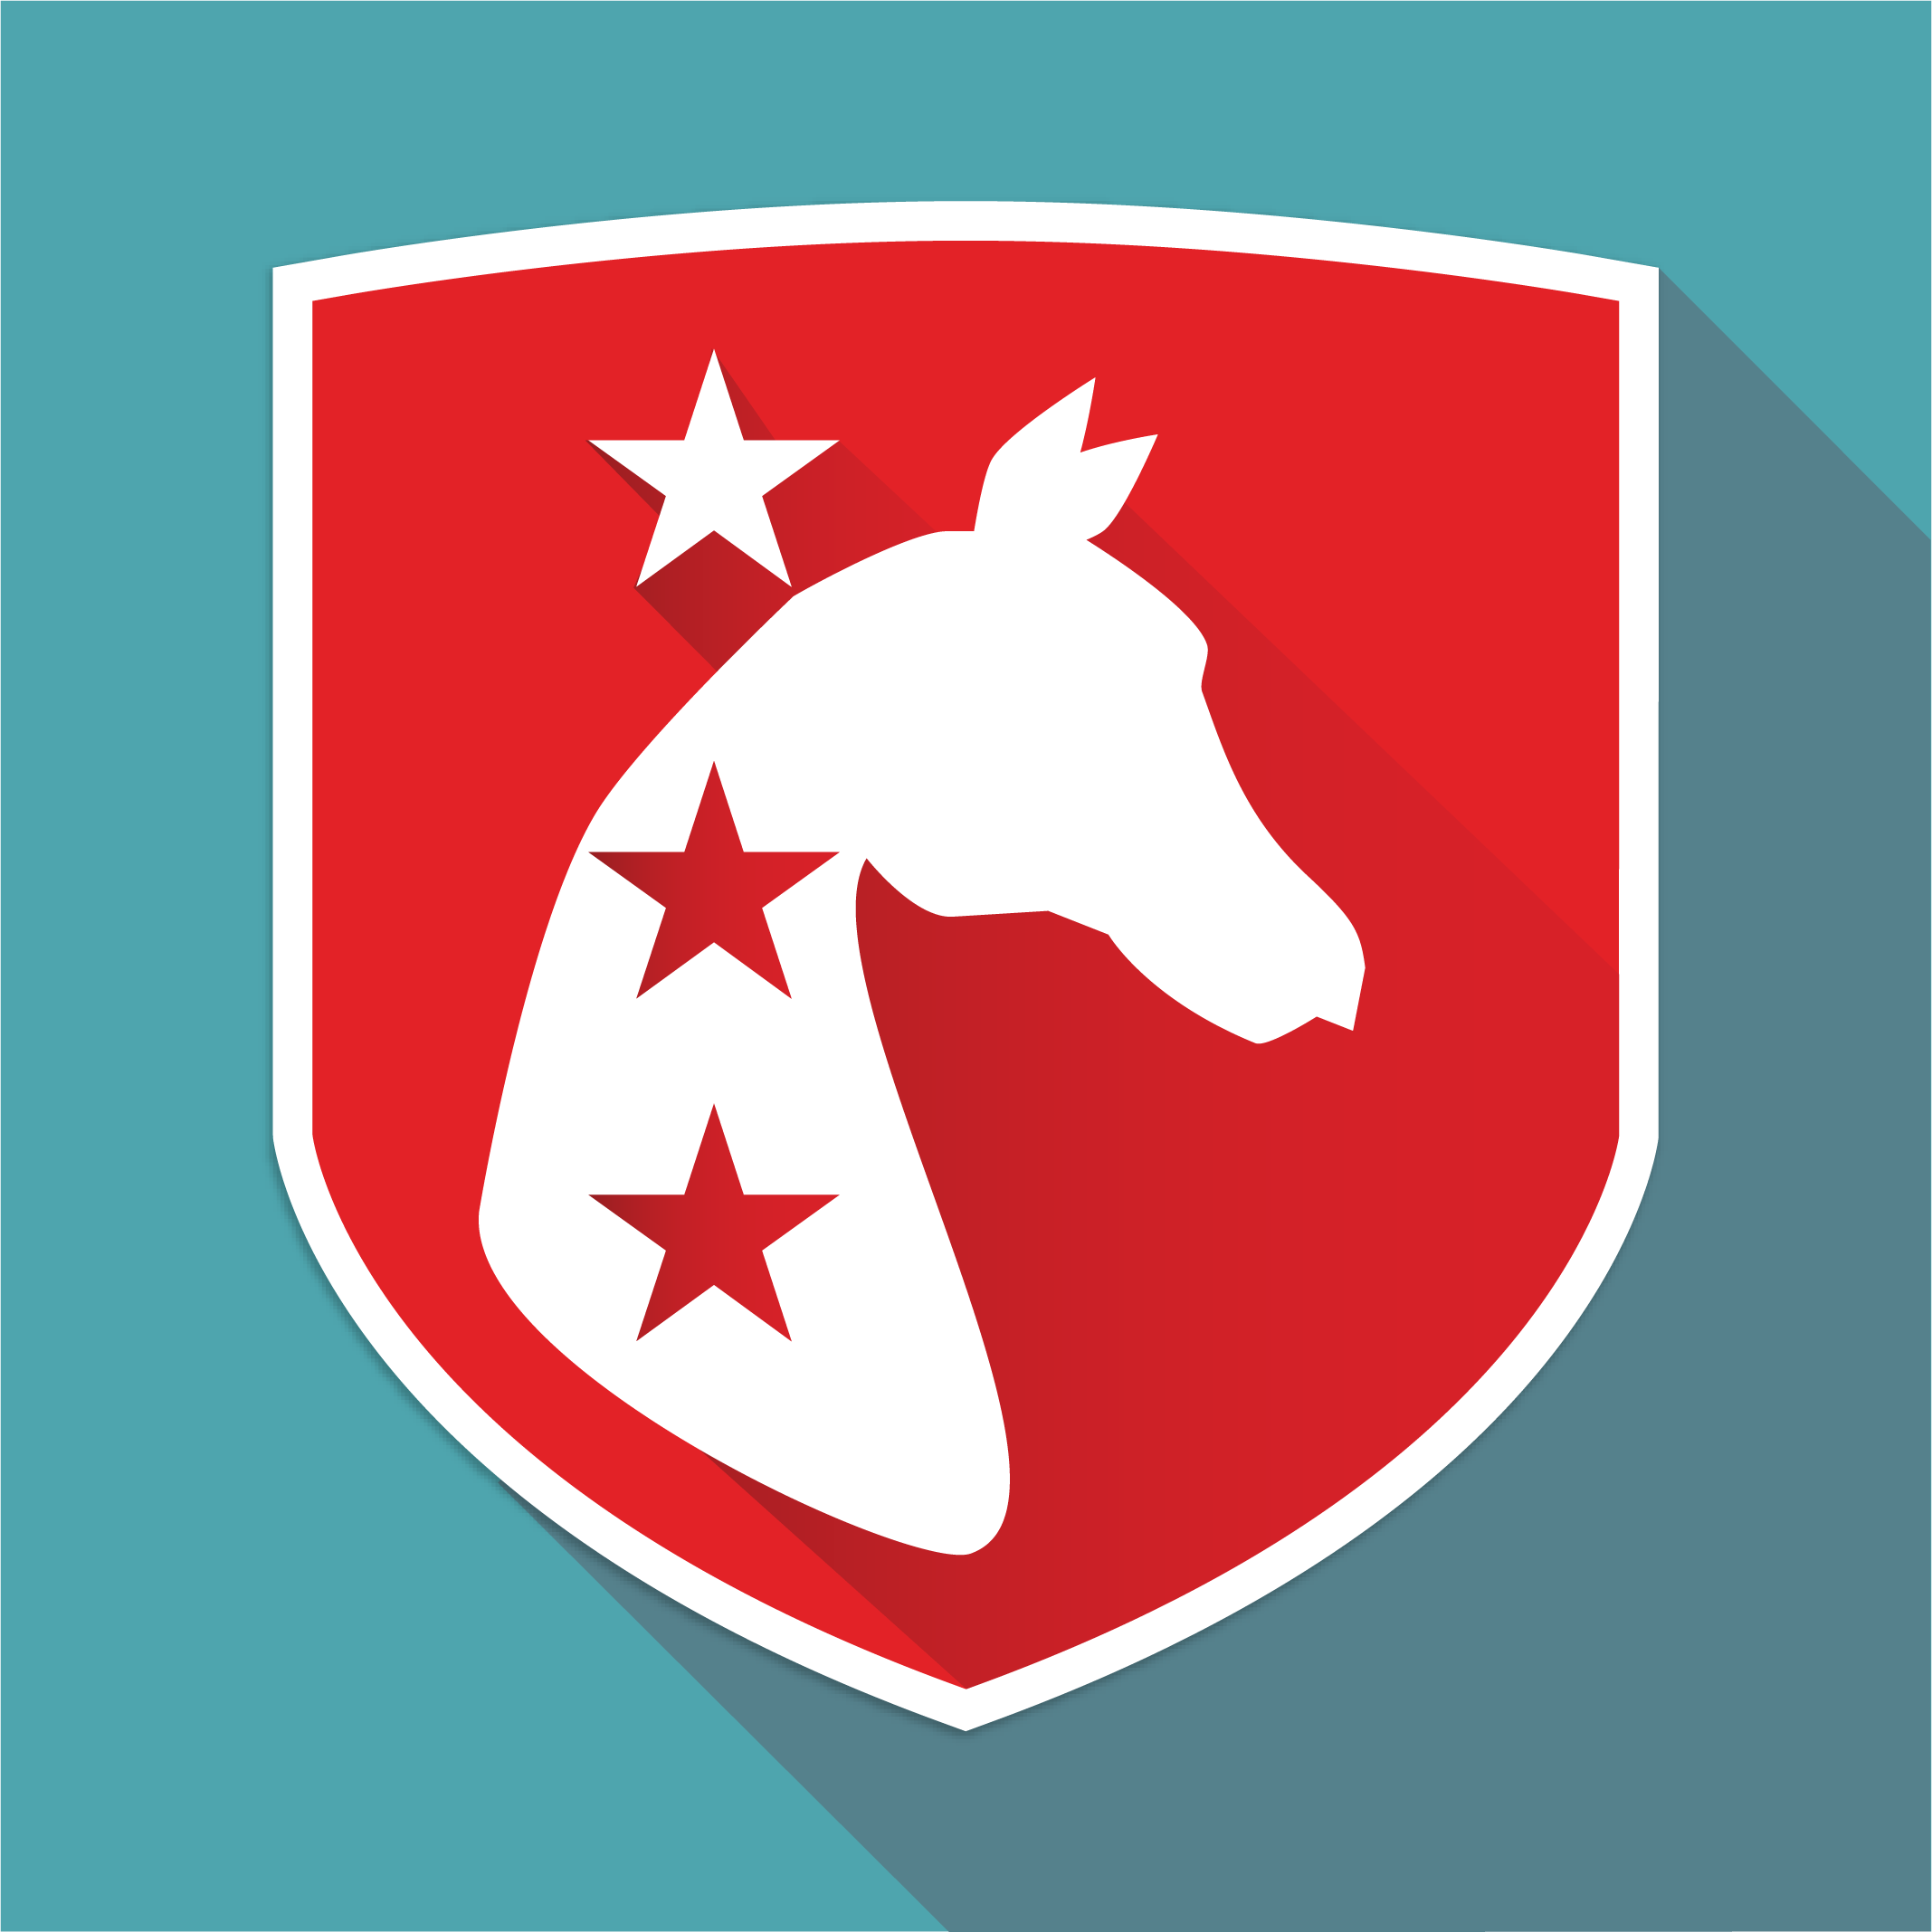 Trackwiz Horse Racing App Announces Addition Of Equibase Data